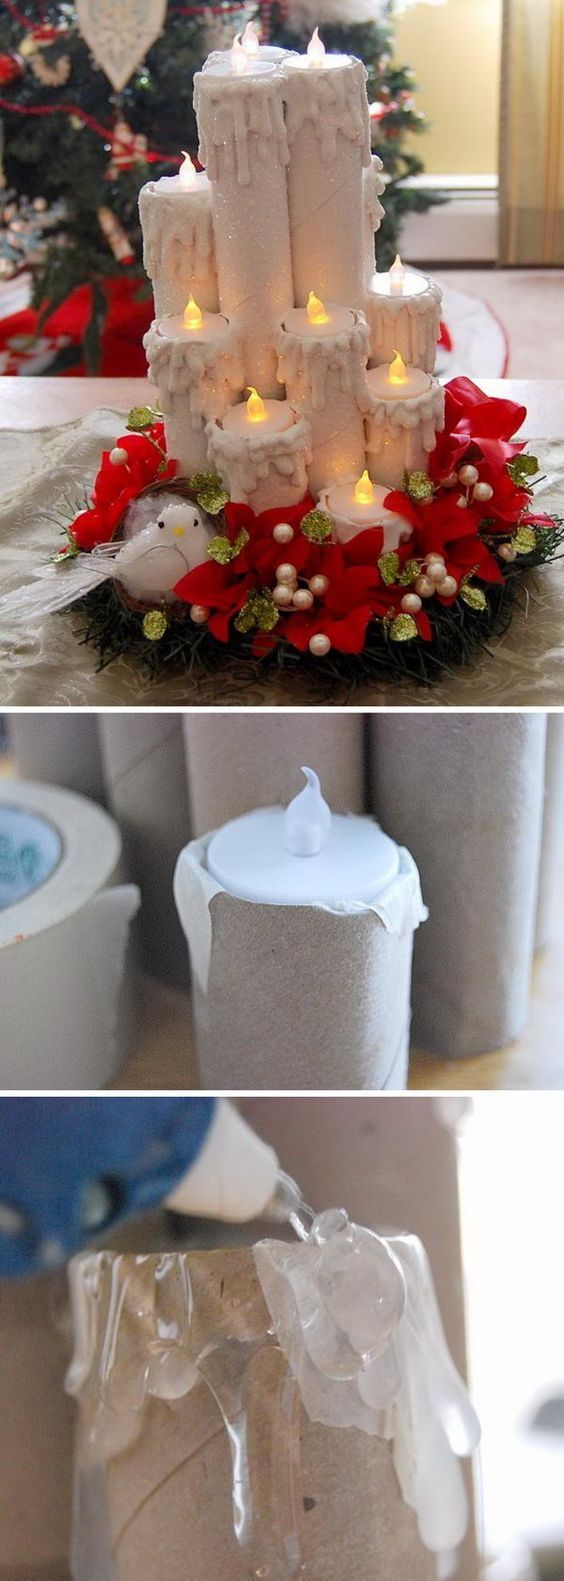 Easy diy christmas candles christmas pinterest diy christmas easy diy christmas candles solutioingenieria Image collections